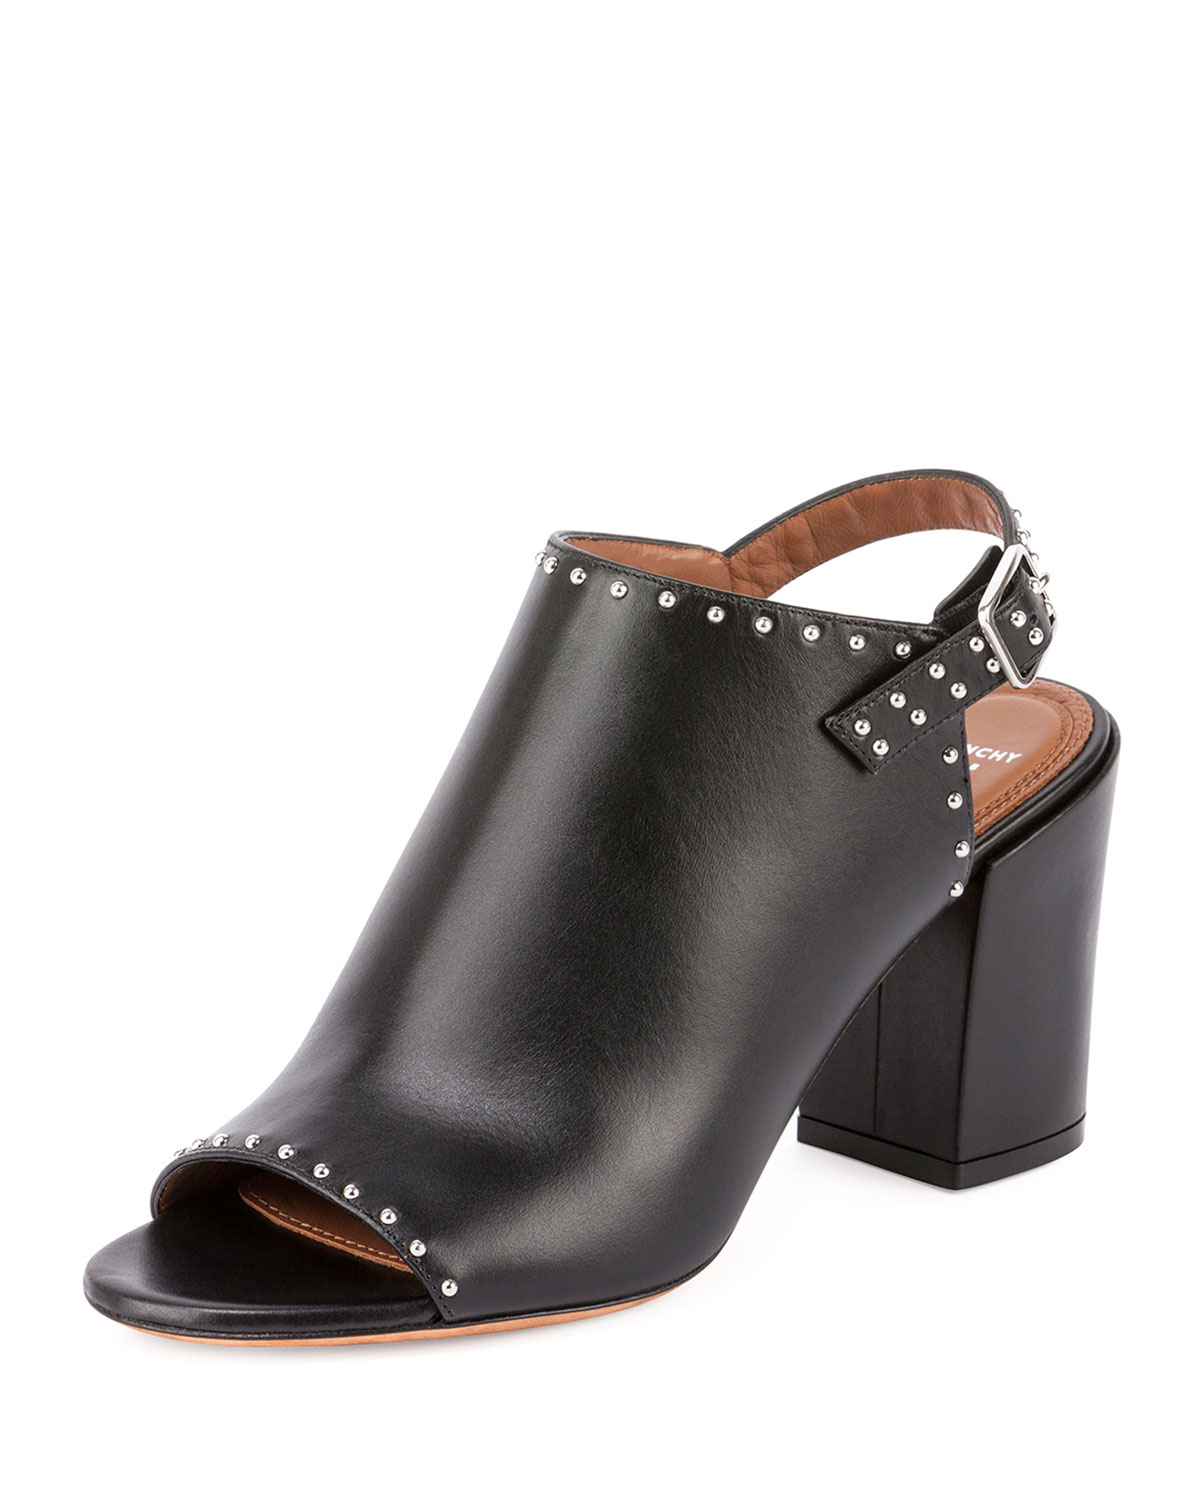 Givenchy Studded Leather Slingback Mule in Black